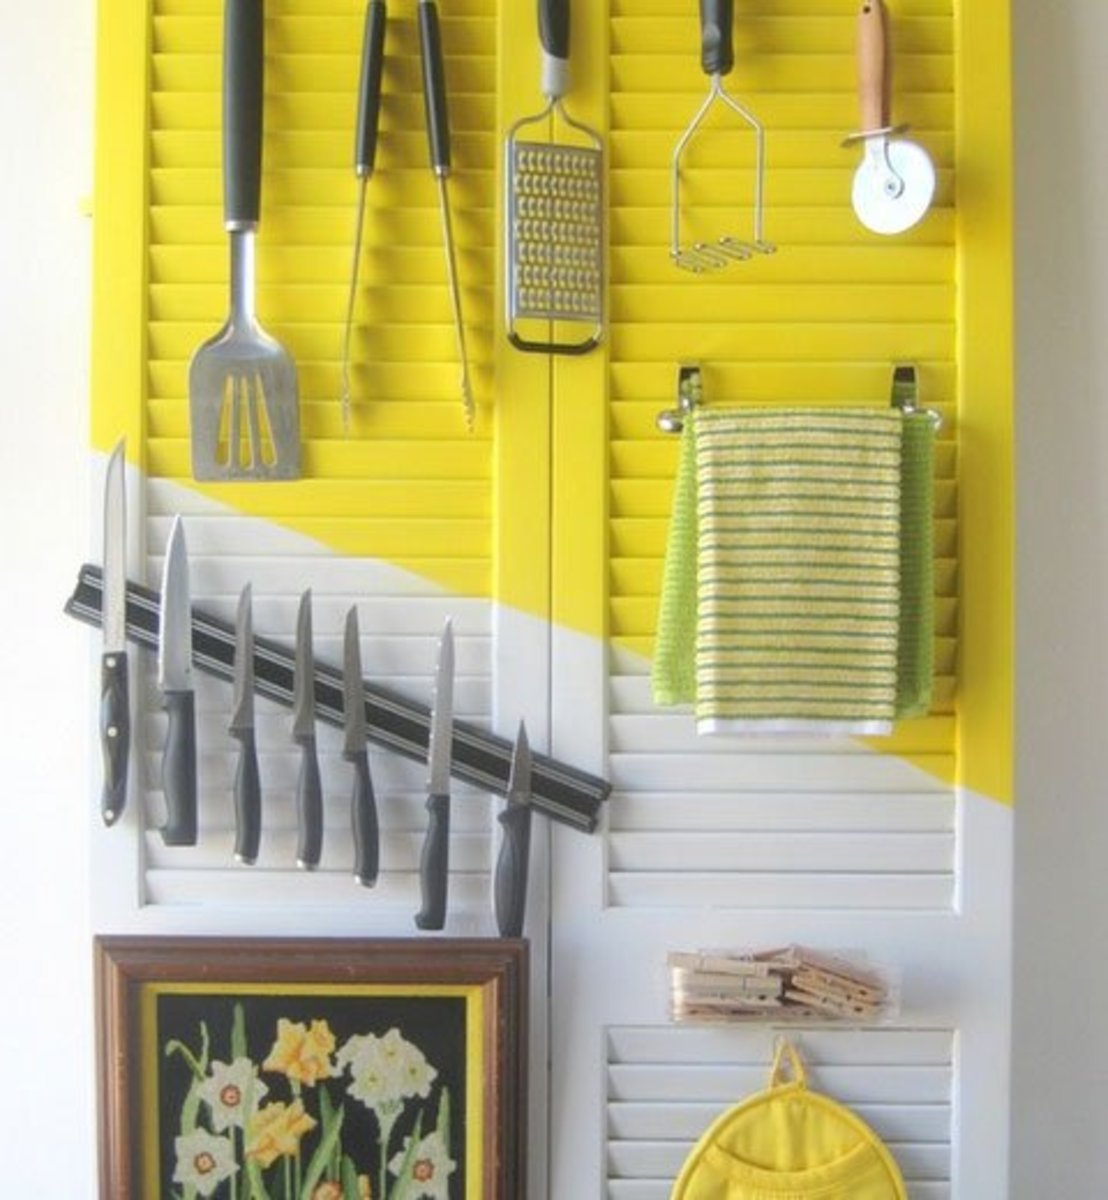 Small Kitchen Organizing Ideas   Click Pic for 20 DIY Kitchen Organization Ideas Re-purposed Doors for Utensils